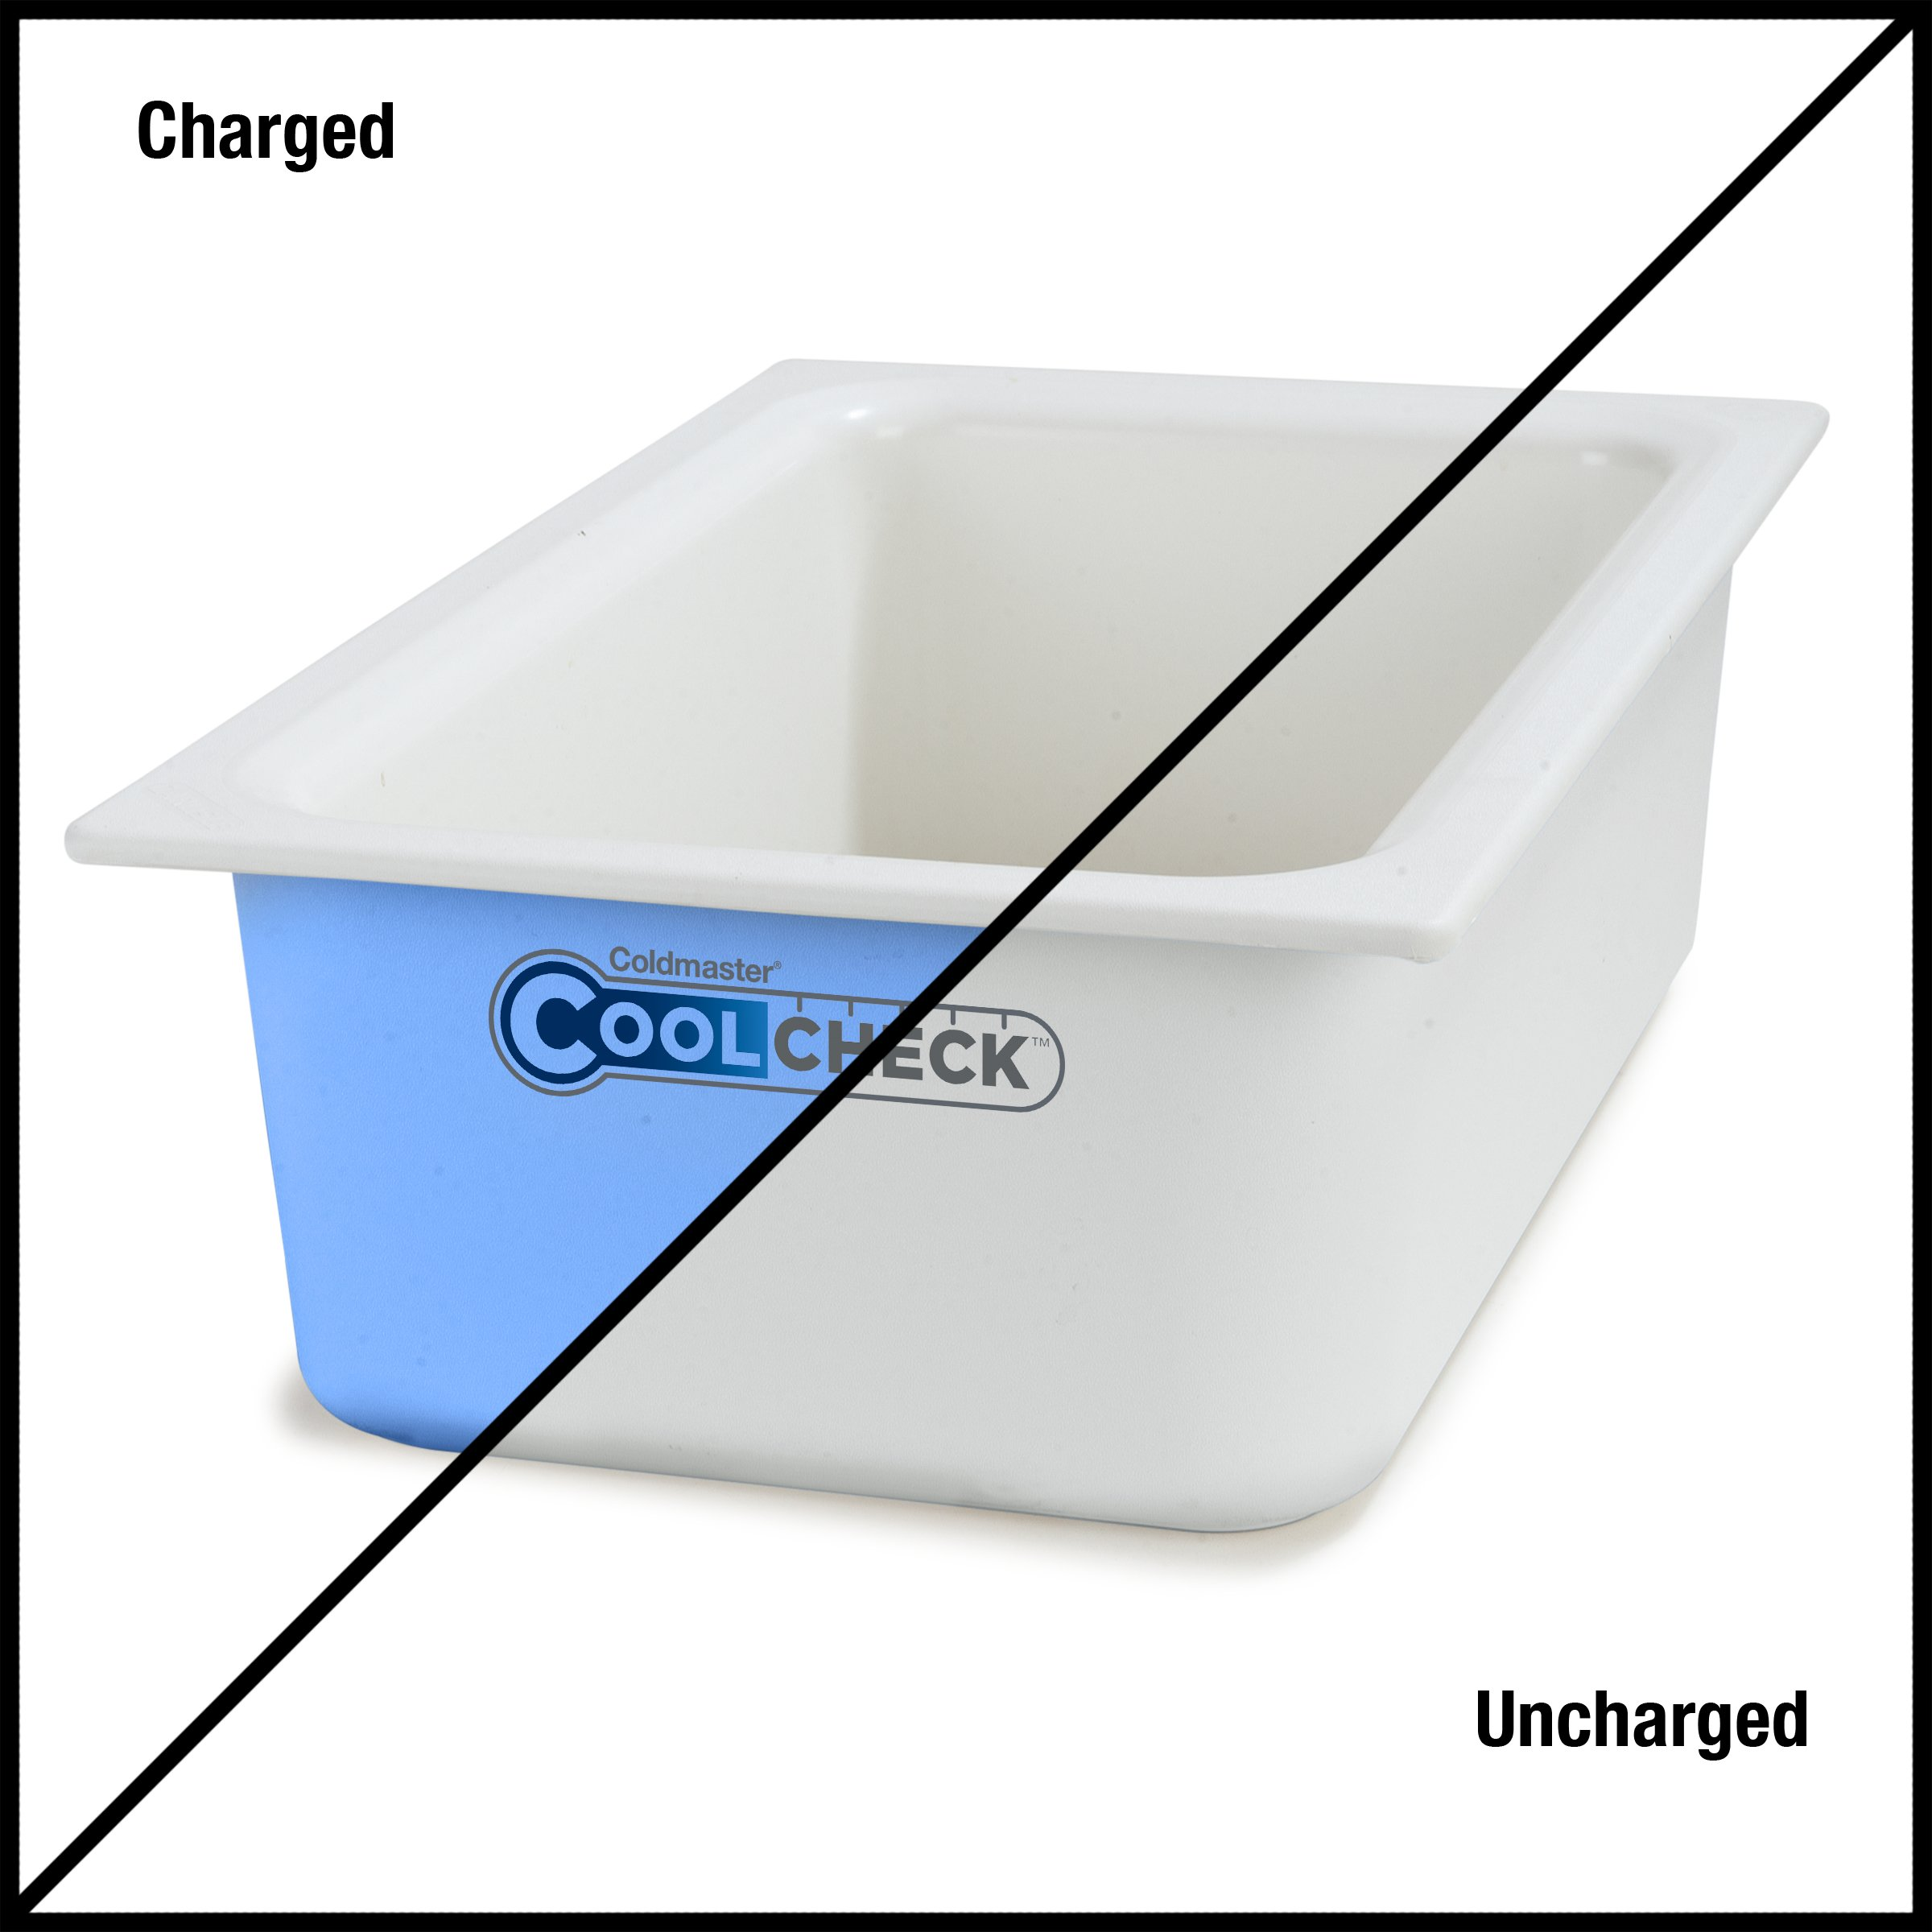 Carlisle CM1100C1402 Coldmaster CoolCheck 6'' Deep Full-Size Insulated Cold Food Pan, 15 Quart, Color Changing, White/Blue by Carlisle (Image #9)